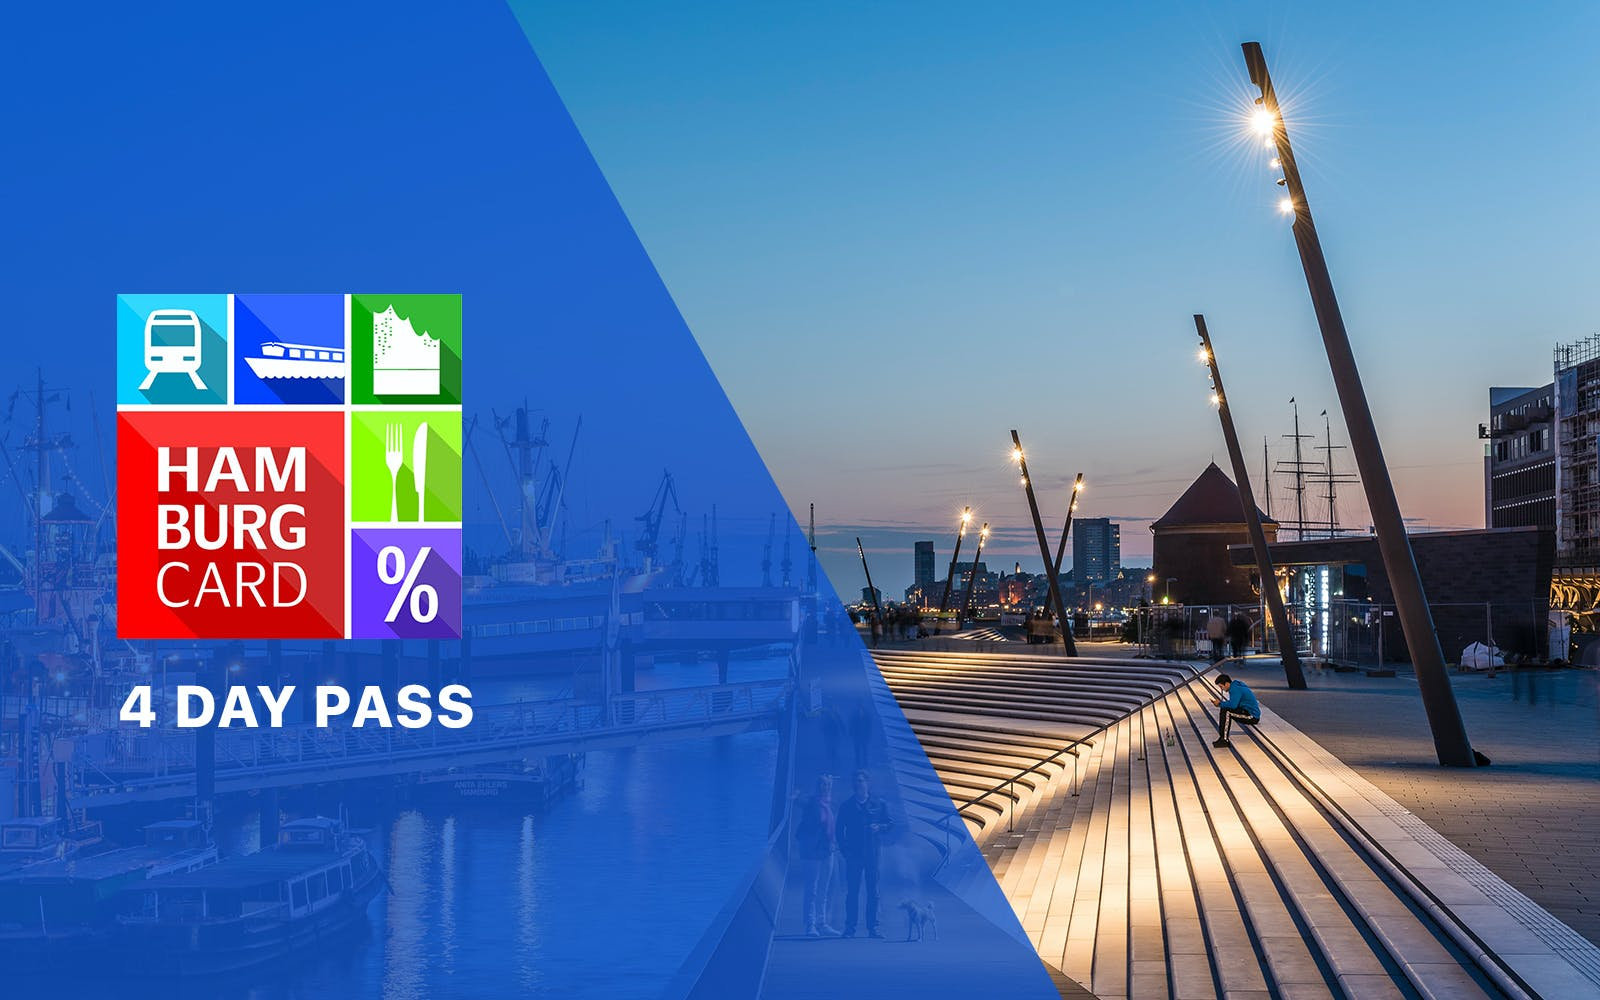 hamburg card - 4 day pass-1